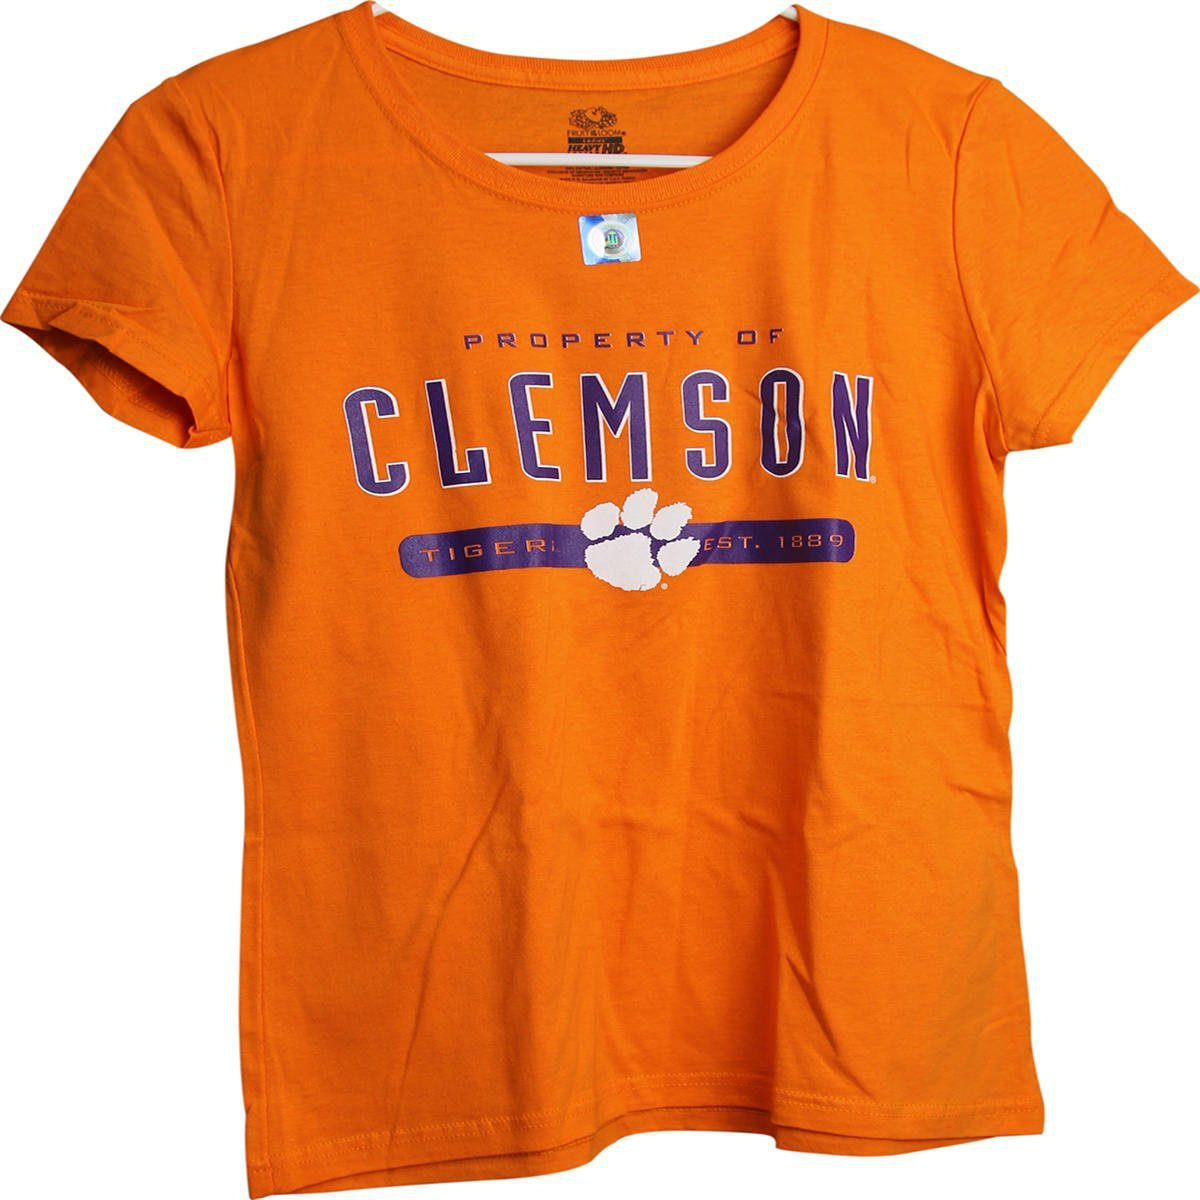 Clemson Tigers Est 1889 Property of Clemson Ladies Women's Orange T-Shirt (Medium)